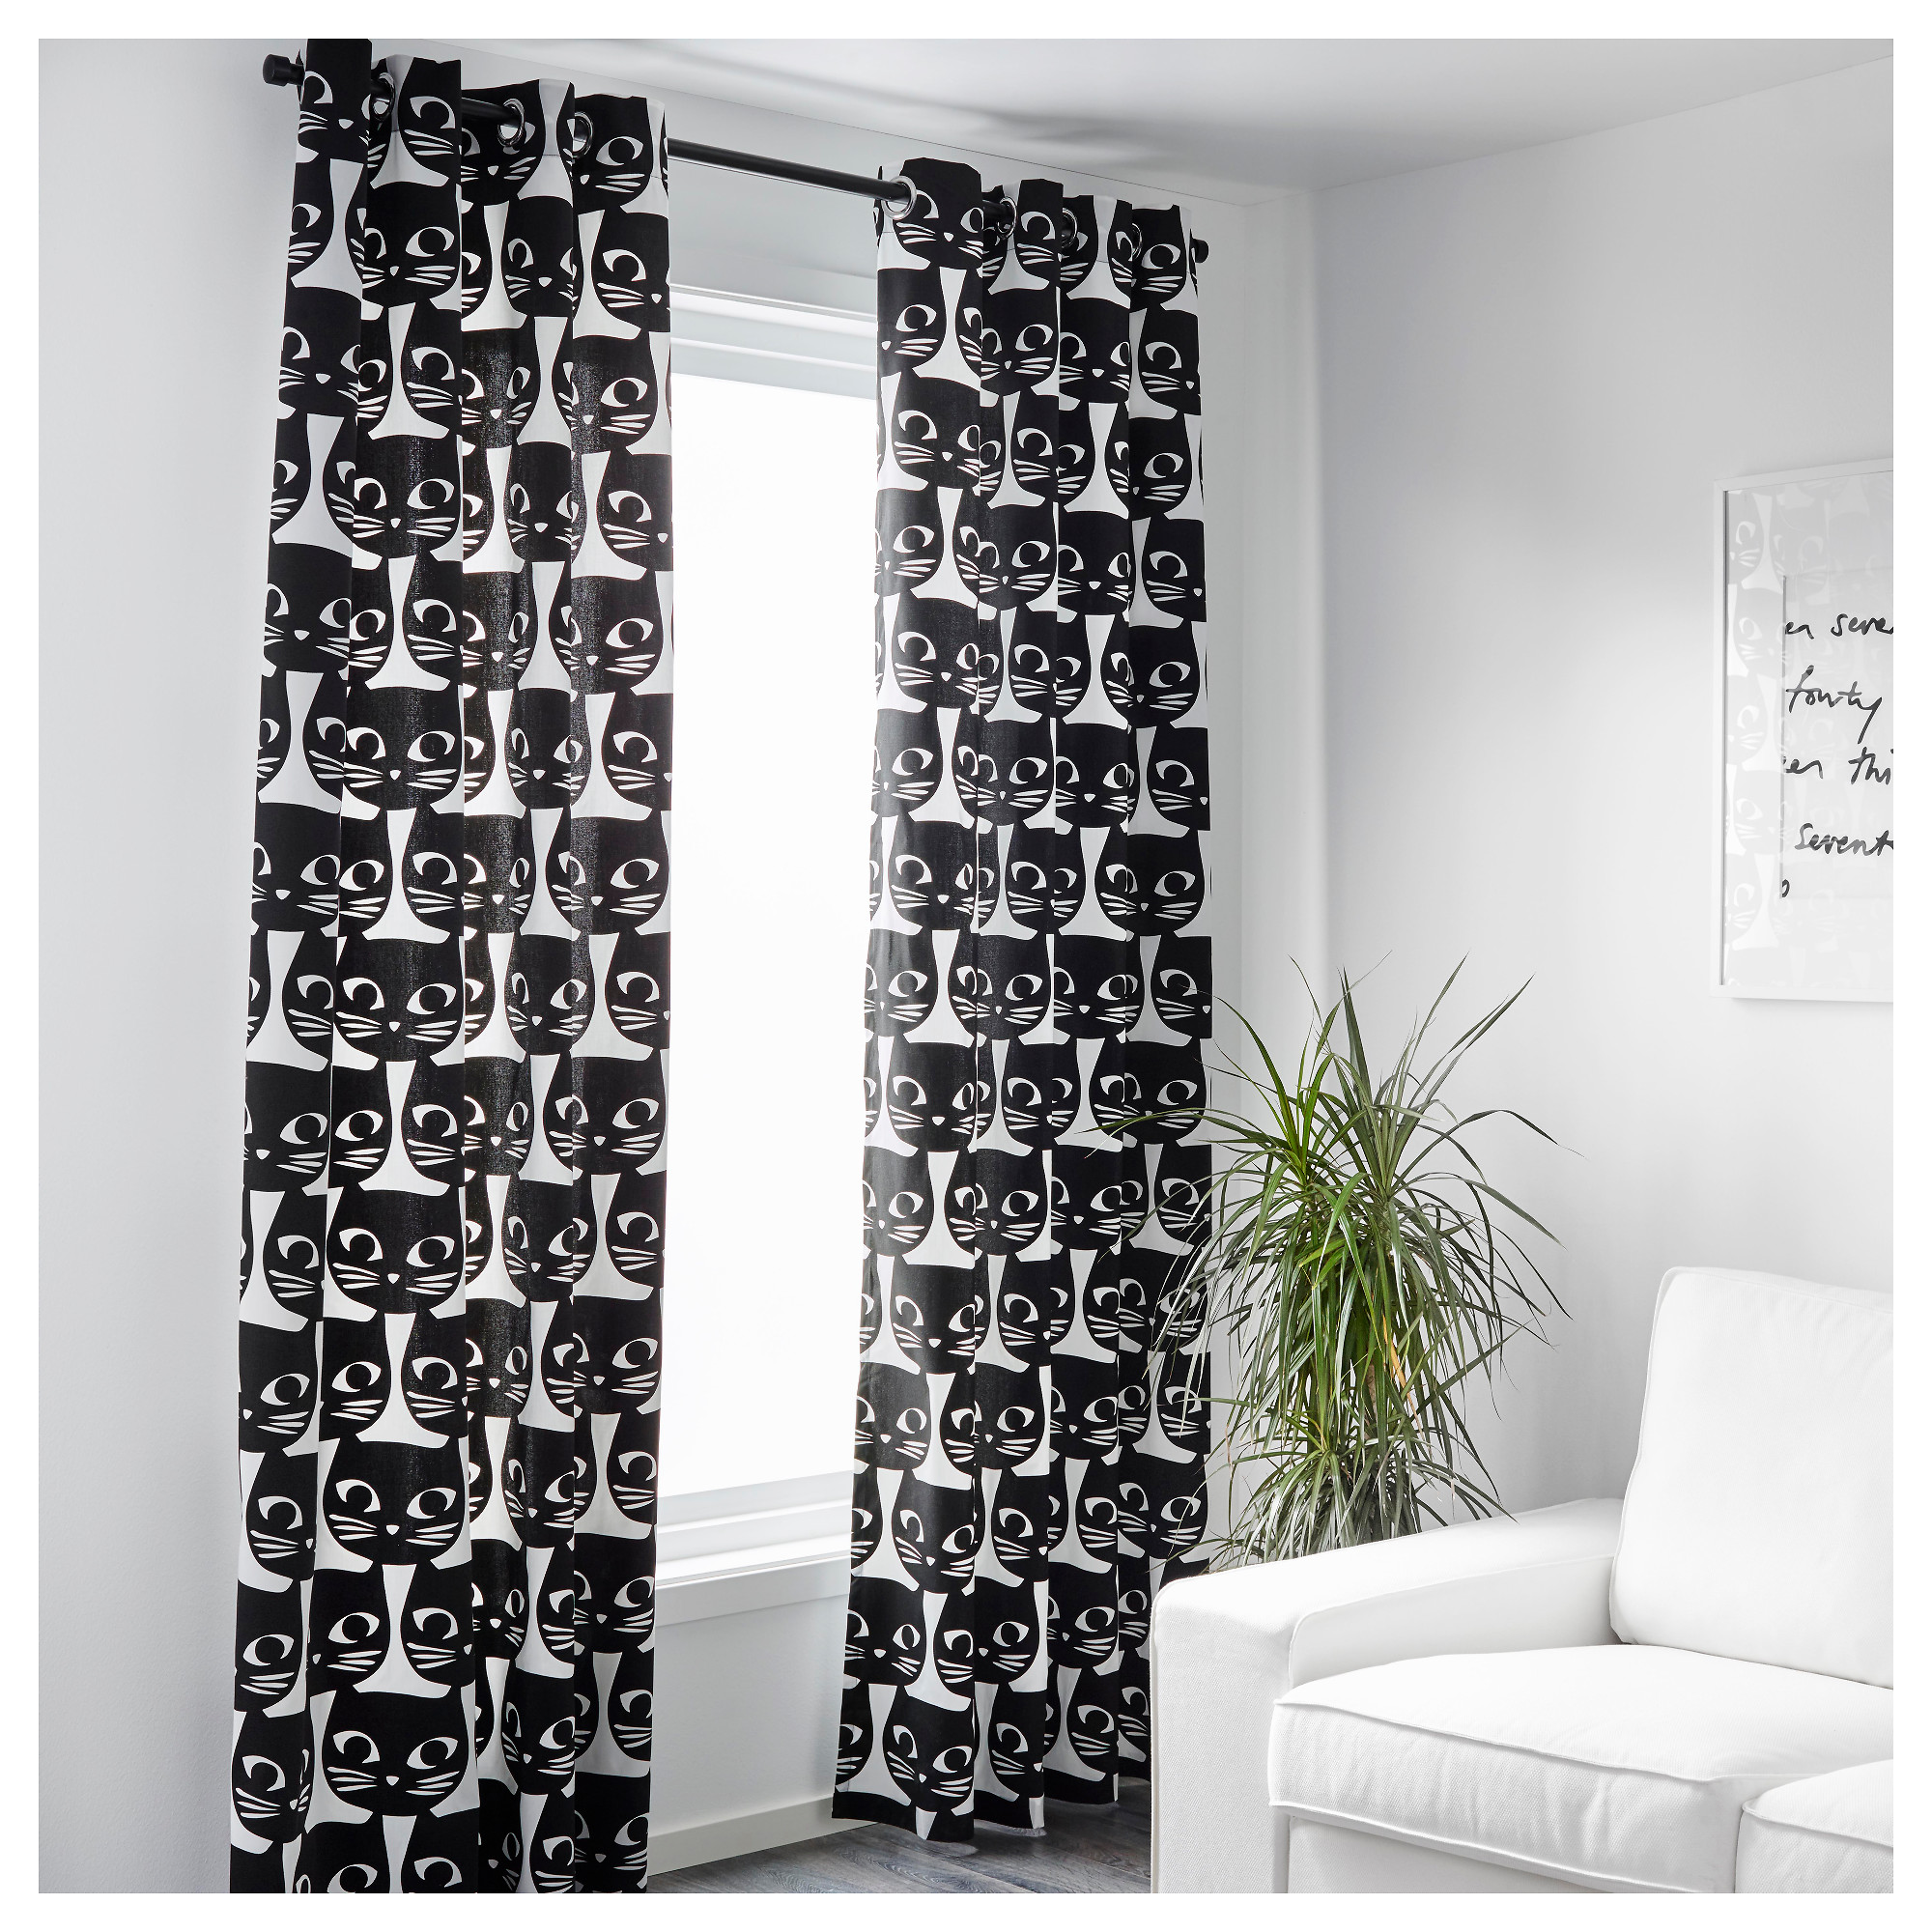 MATTRAM Curtains, 1 pair - IKEA